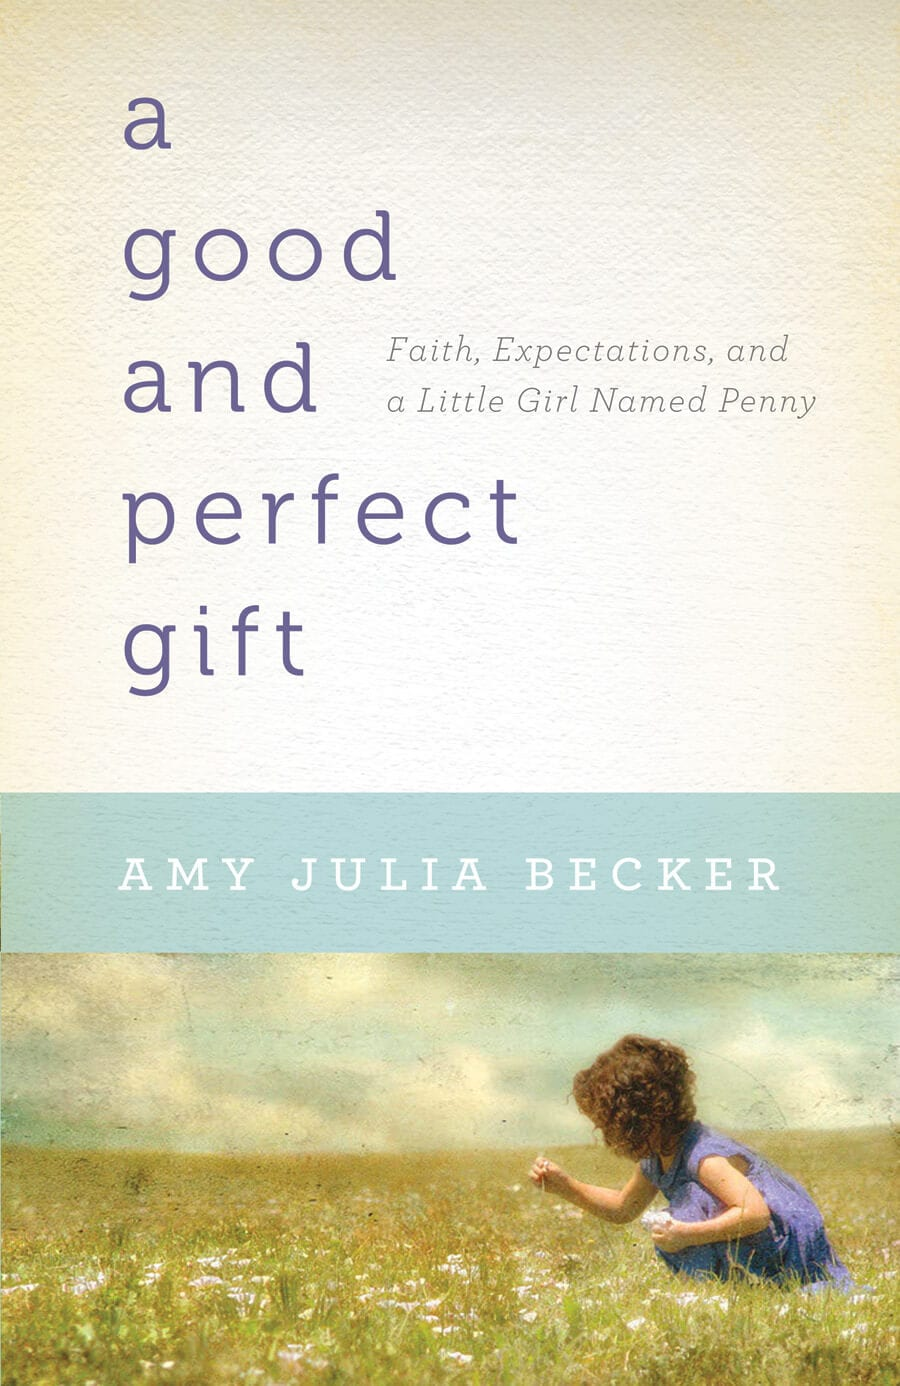 A Good and Perfect Gift by Amy Julia Becker